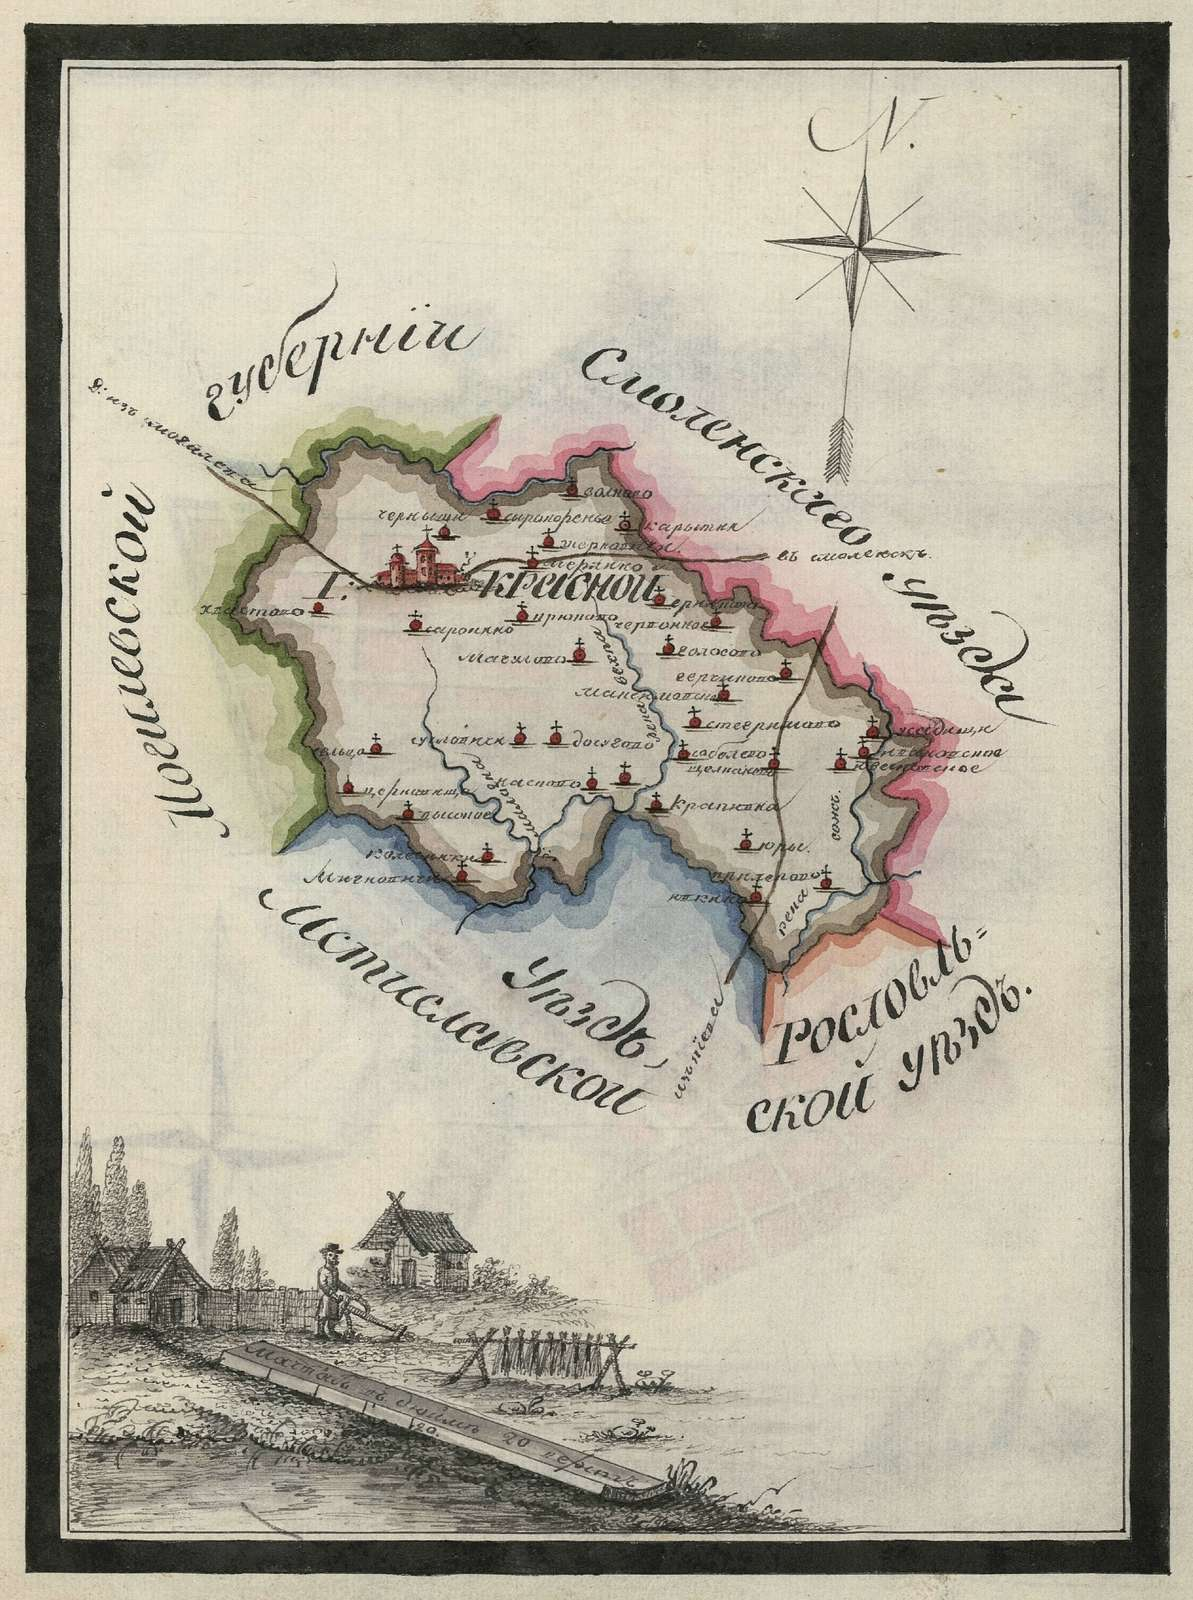 Krasny (Red) county plan.